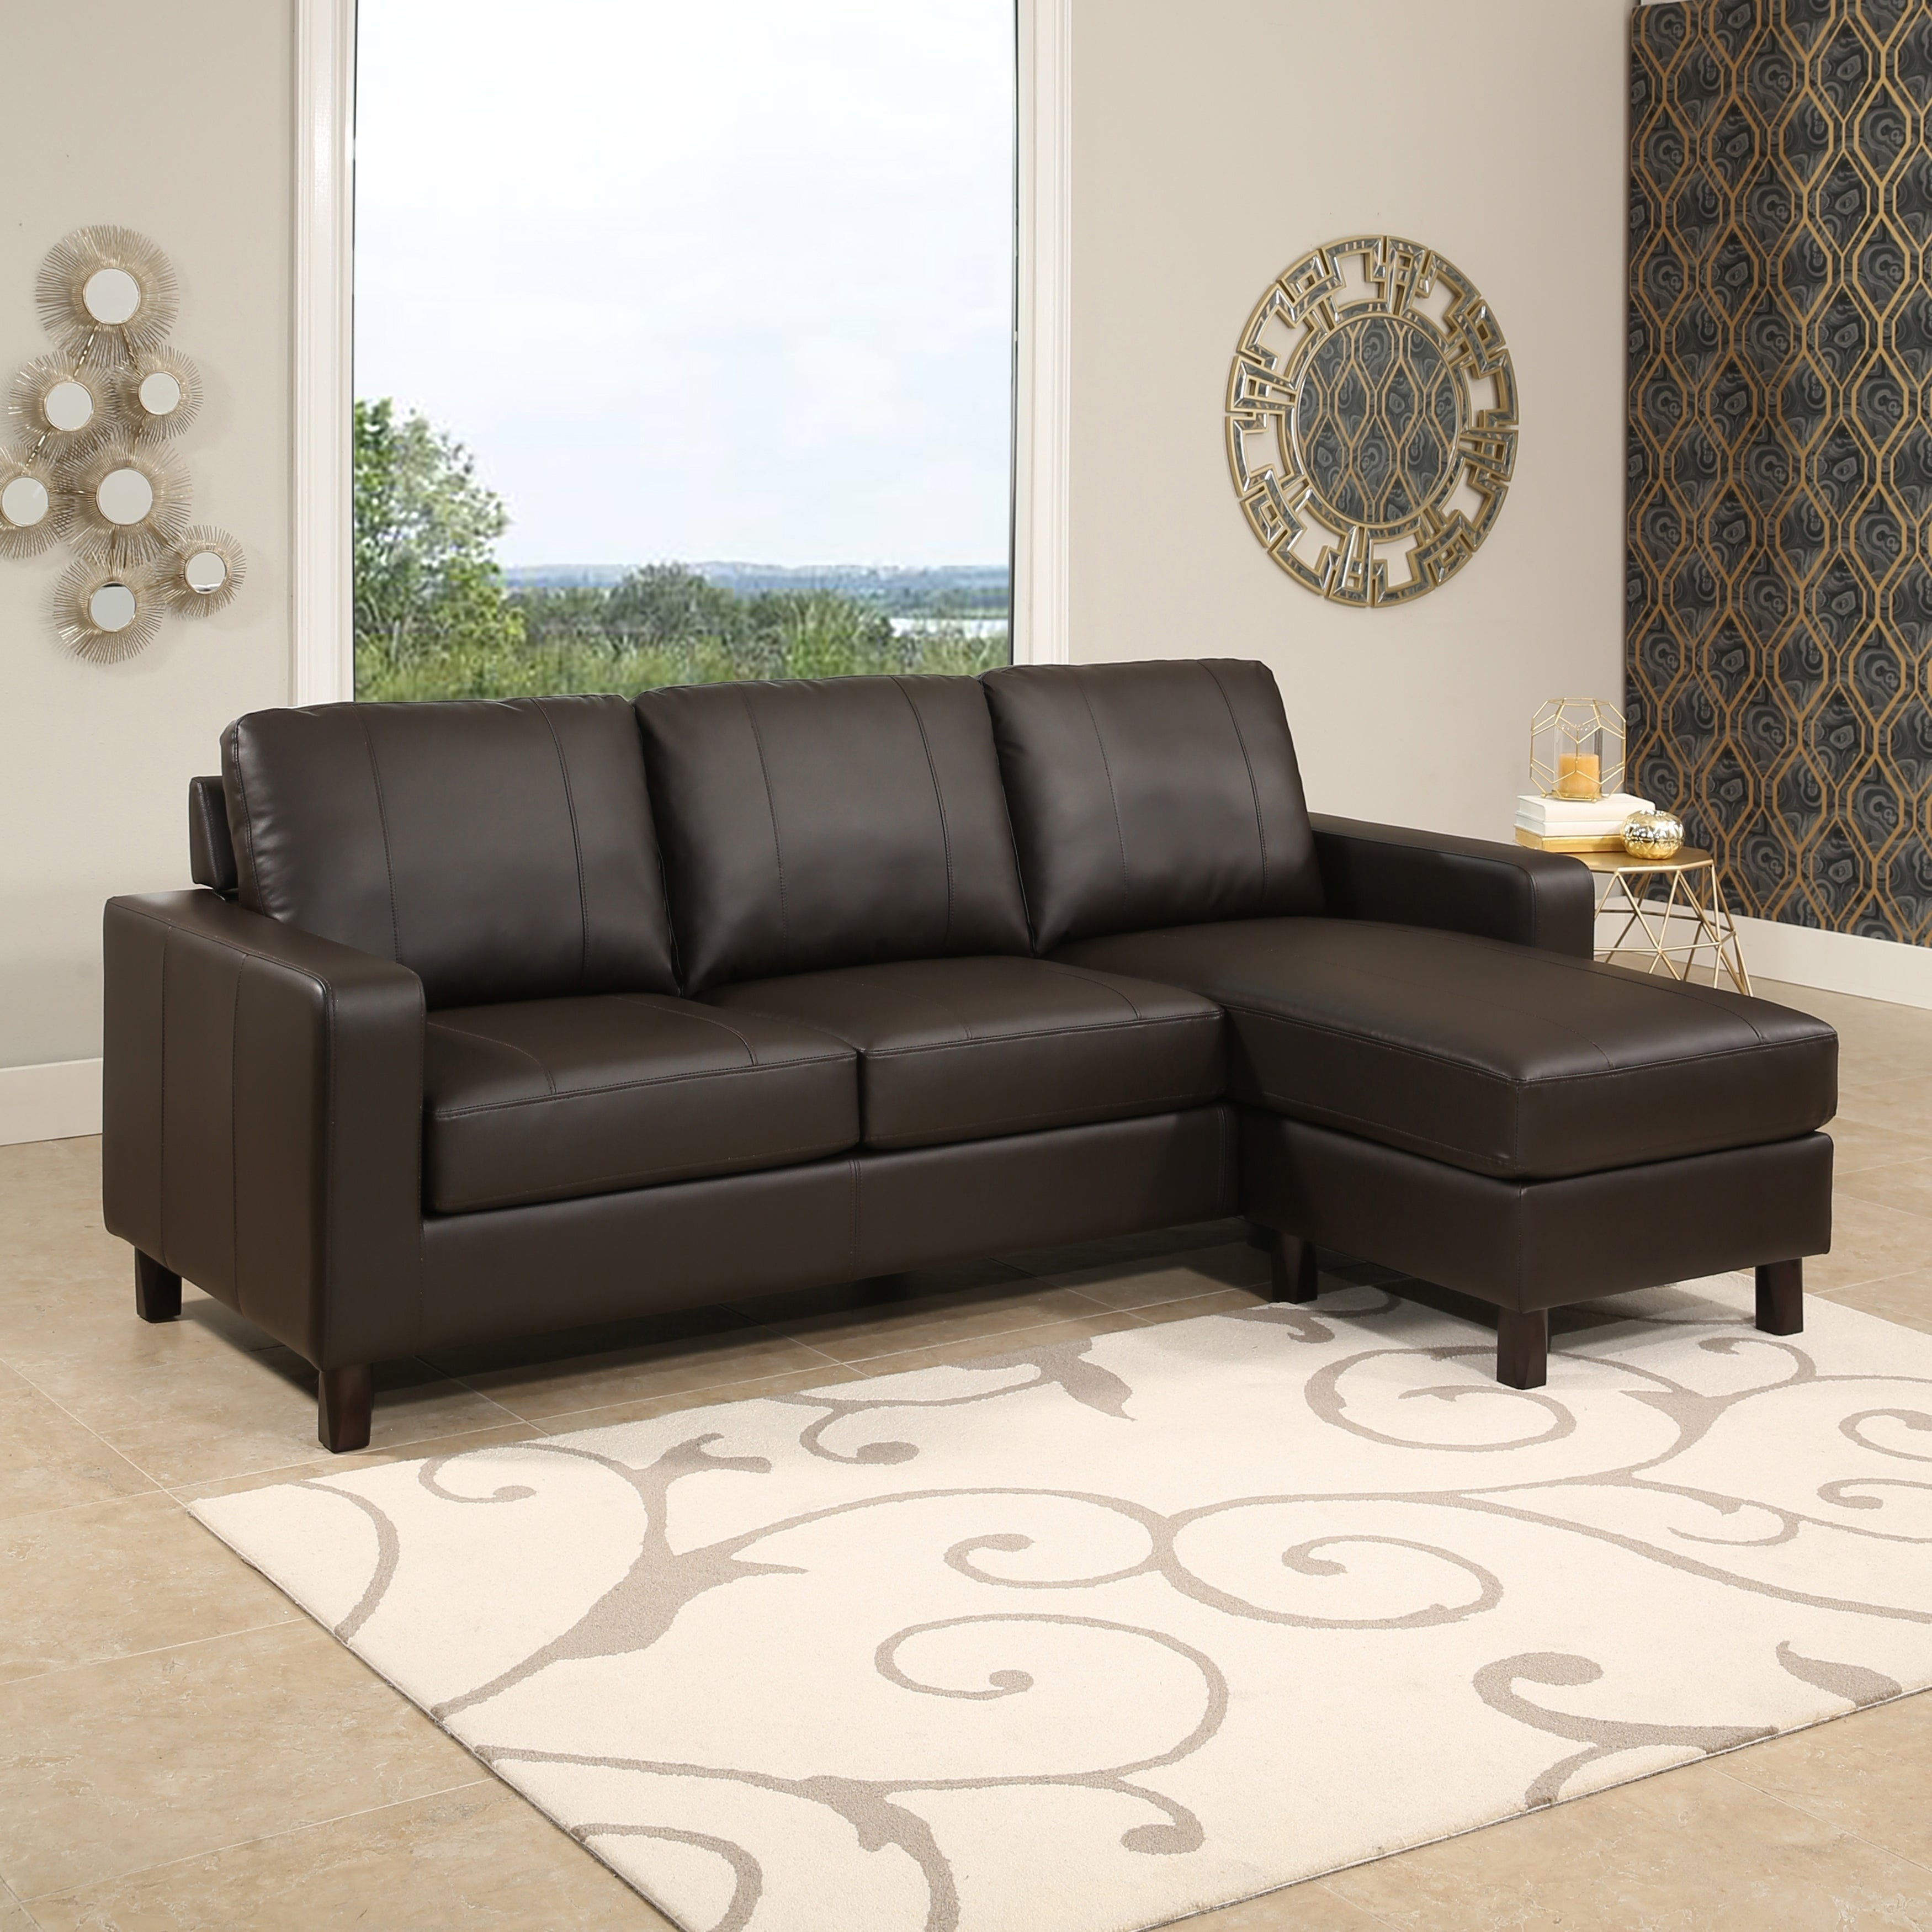 Ordinaire Shop Abbyson Hampton Brown Leather Reversible Sectional And Storage Ottoman    On Sale   Free Shipping Today   Overstock.com   19534996